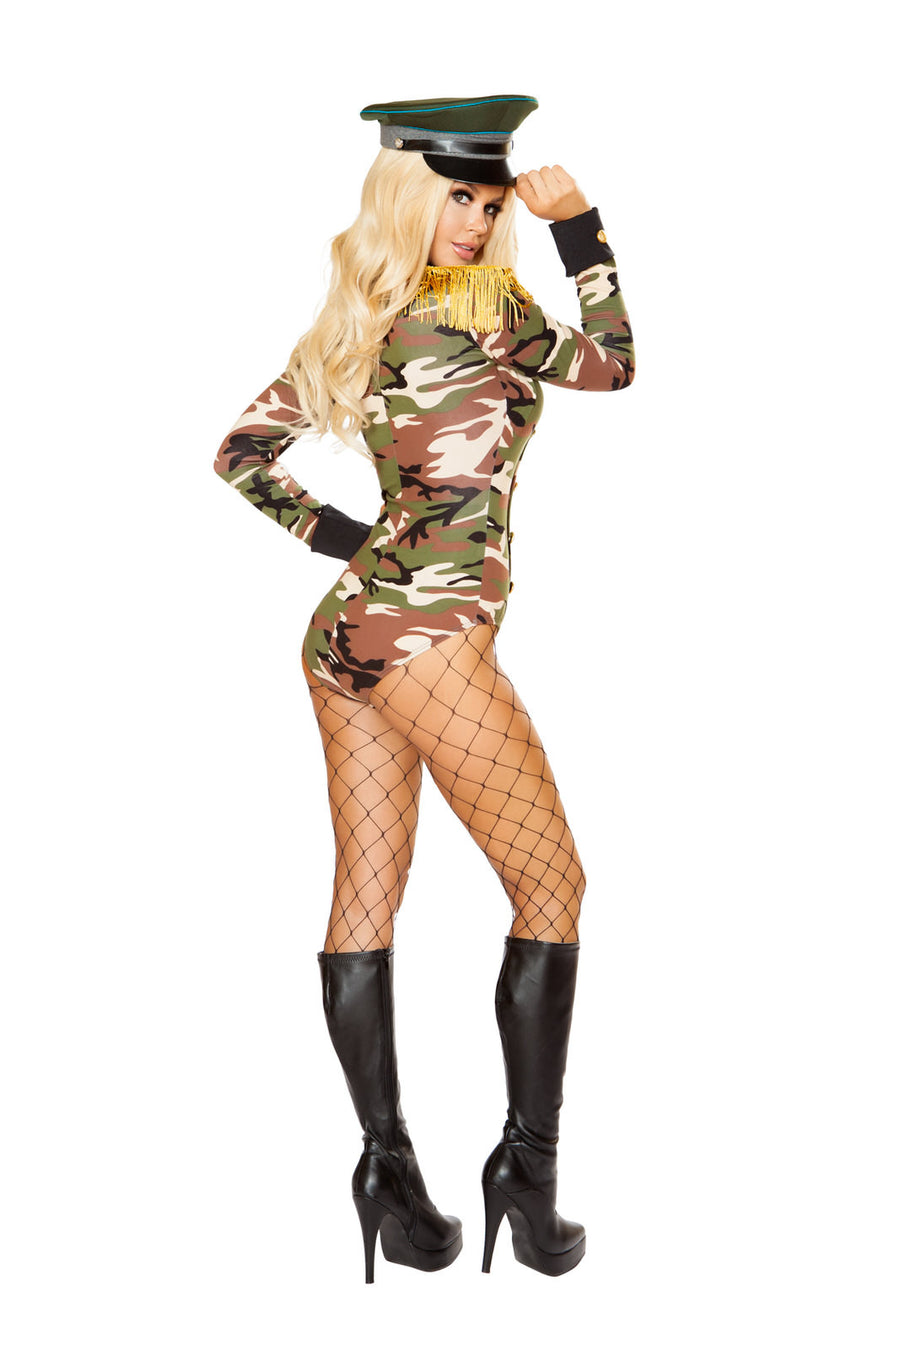 1pc Army Girl ${description} | Roma Costume and Roma Confidential wholesale manufacturer of Women Apparel bulk world wide wholesale and world wide drop ship services for Adult Halloween Costumes, Sexy and Elegant Lingerie, Rave Clothing, Club wear, and Christmas Costumes. Costumes, Roma Costume, Inc., Roma Costume, Roma Confidential, Wholesale clothing, drop ship, drop ship service, Wholesale Lingerie, Wholesale Adult Halloween Costumes, Rave Clothing, EDM Clothing, Festival Wear, Christmas Costumes, Clubwear, Club wear.